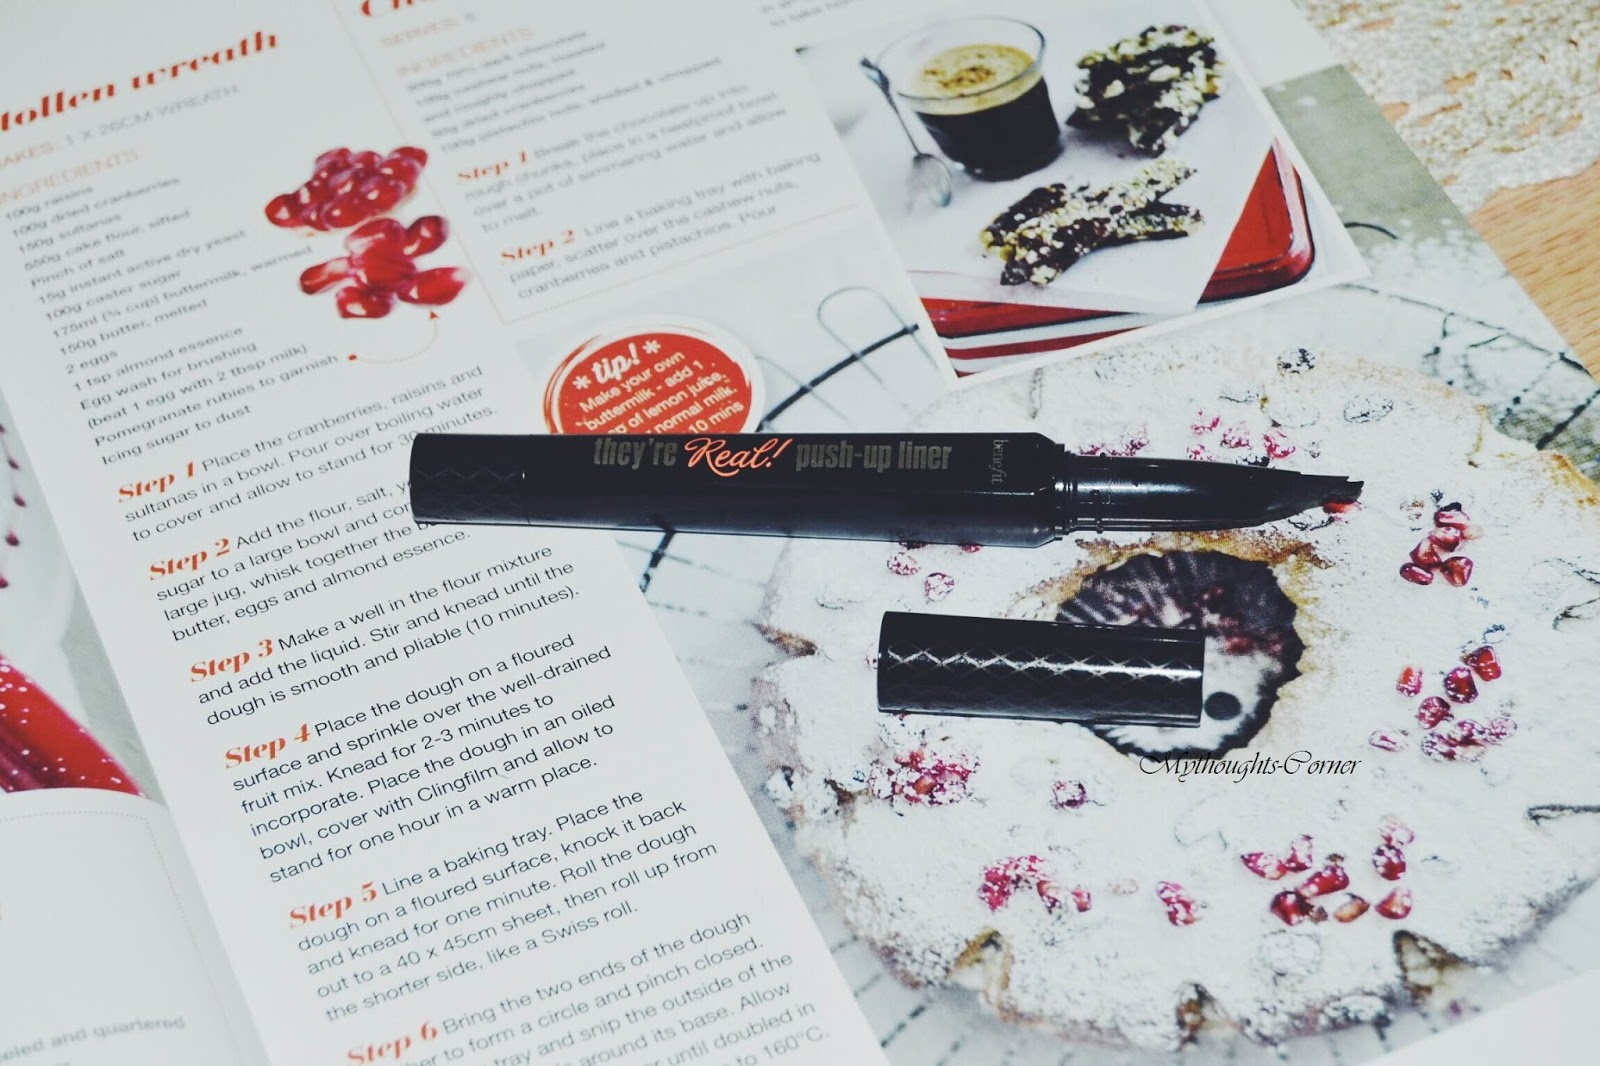 06a258be632 Is it Worth The Hype? Benefit They're Real Push-Up Liner Review - My ...